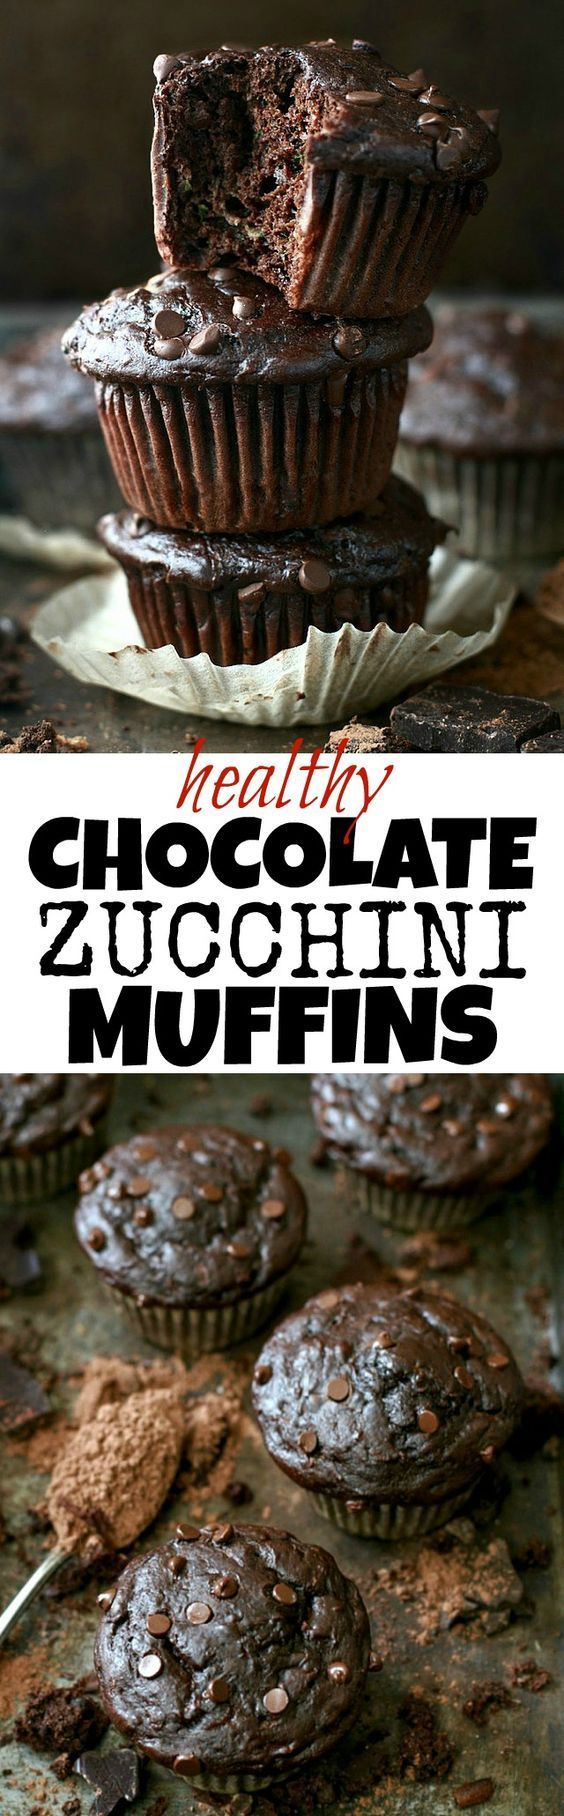 Healthy Double Chocolate Zucchini Muffins - so decadently delicious that you'd never believe they're naturally sweetened and made without any butter or oil! | runningwithspoons.com #recipe #dessert